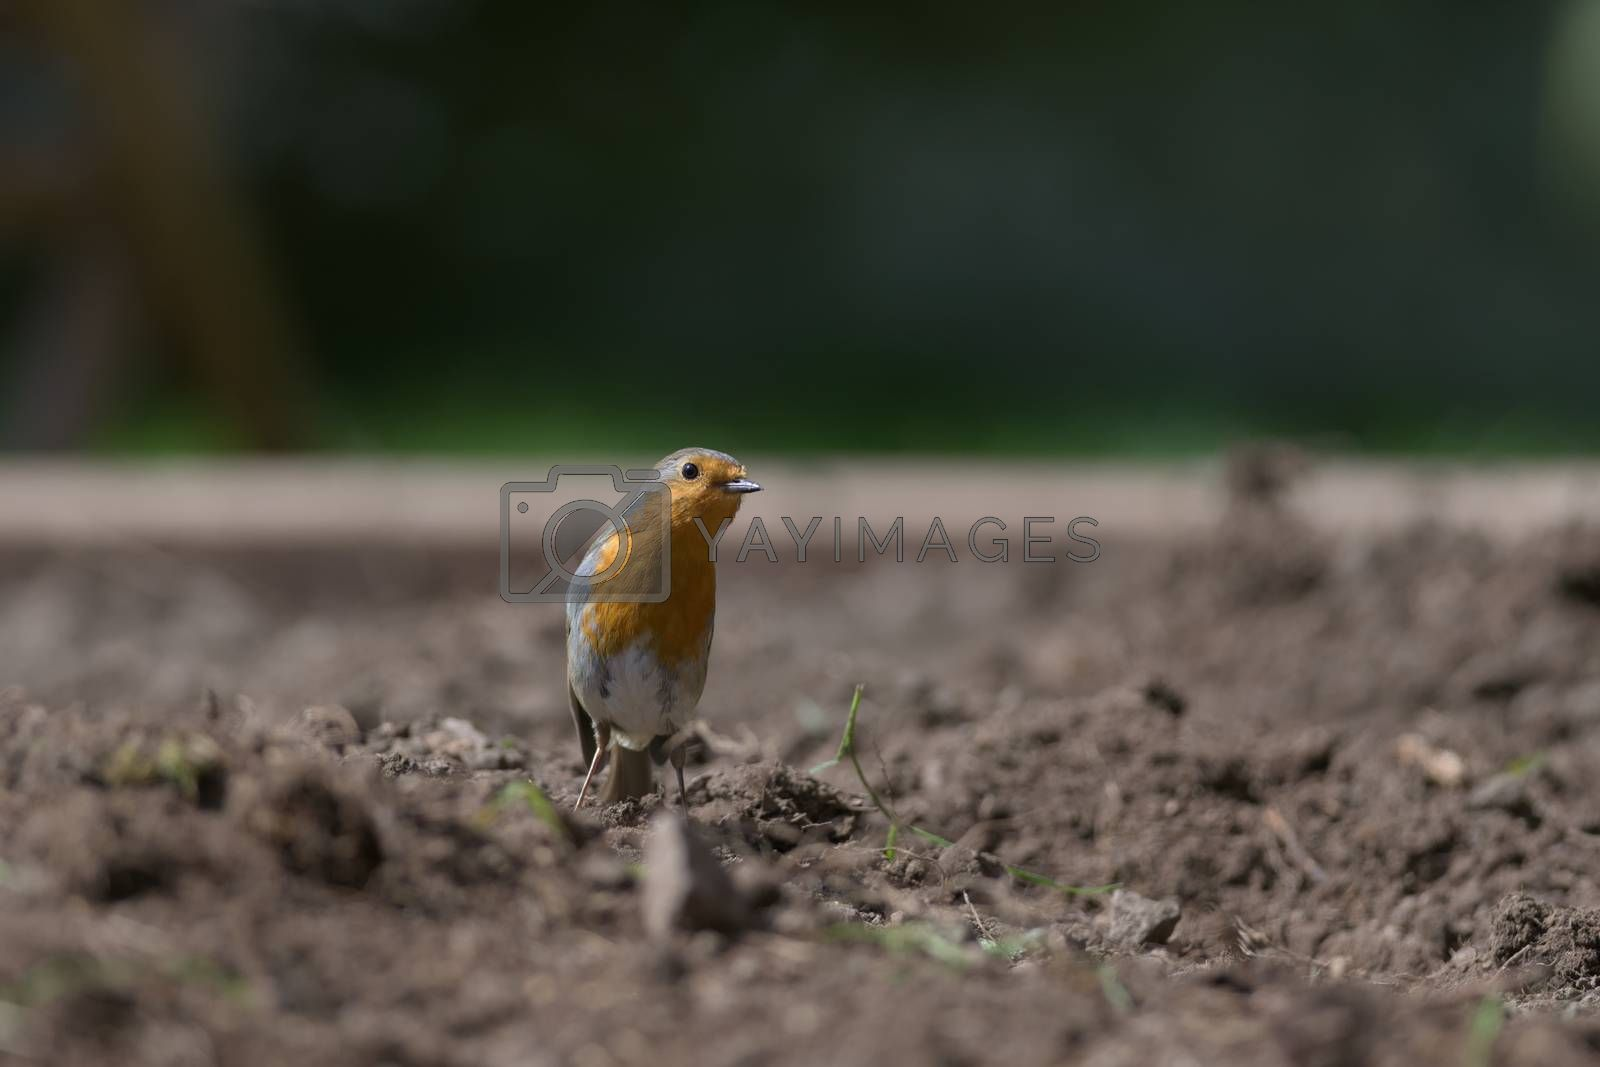 Surrounded by earth and green pieces of plant, a redbreast robin stands among a garden planting bed, inquisitively tilts head to look at the camera.